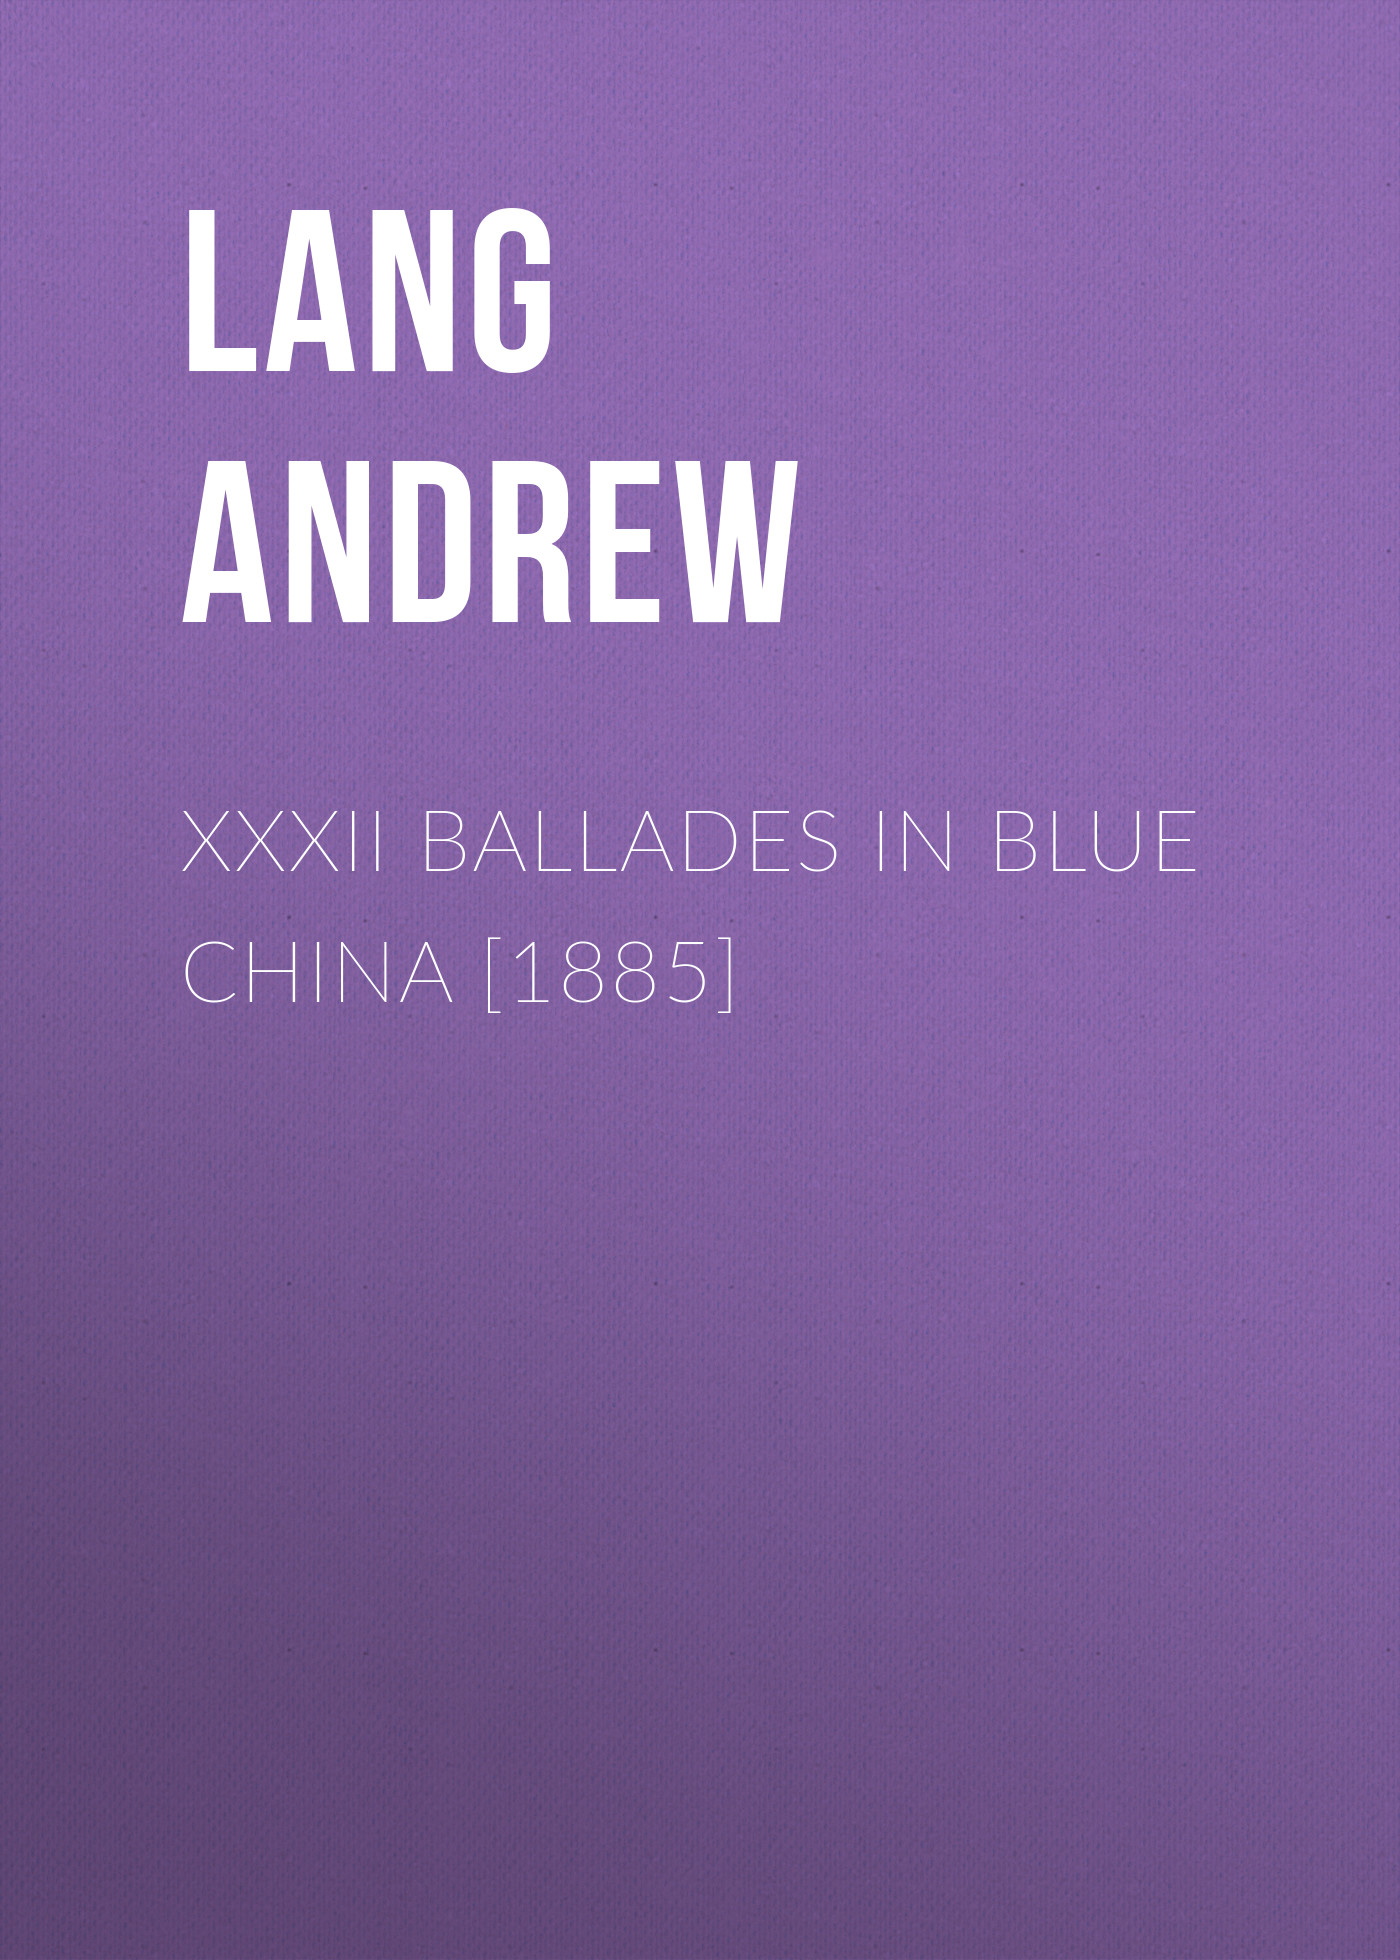 цена Lang Andrew XXXII Ballades in Blue China [1885] онлайн в 2017 году